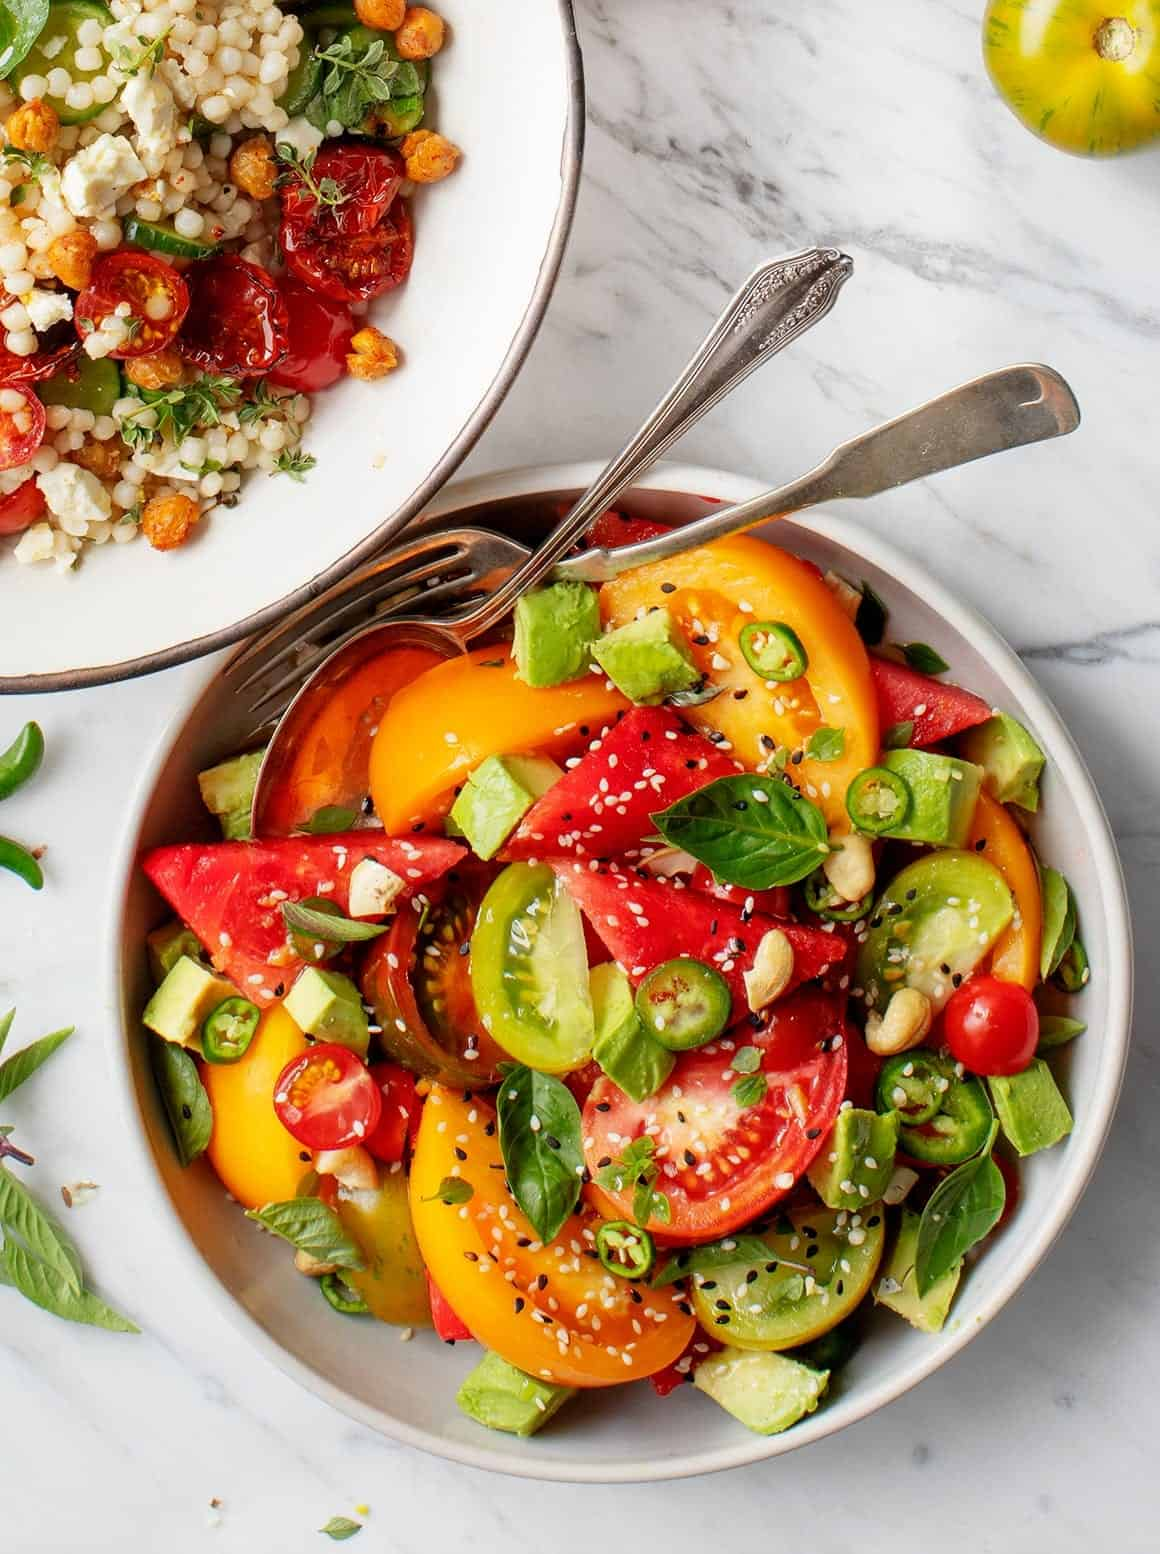 Spicy Tomato Watermelon Salad in a bowl with serving utensils